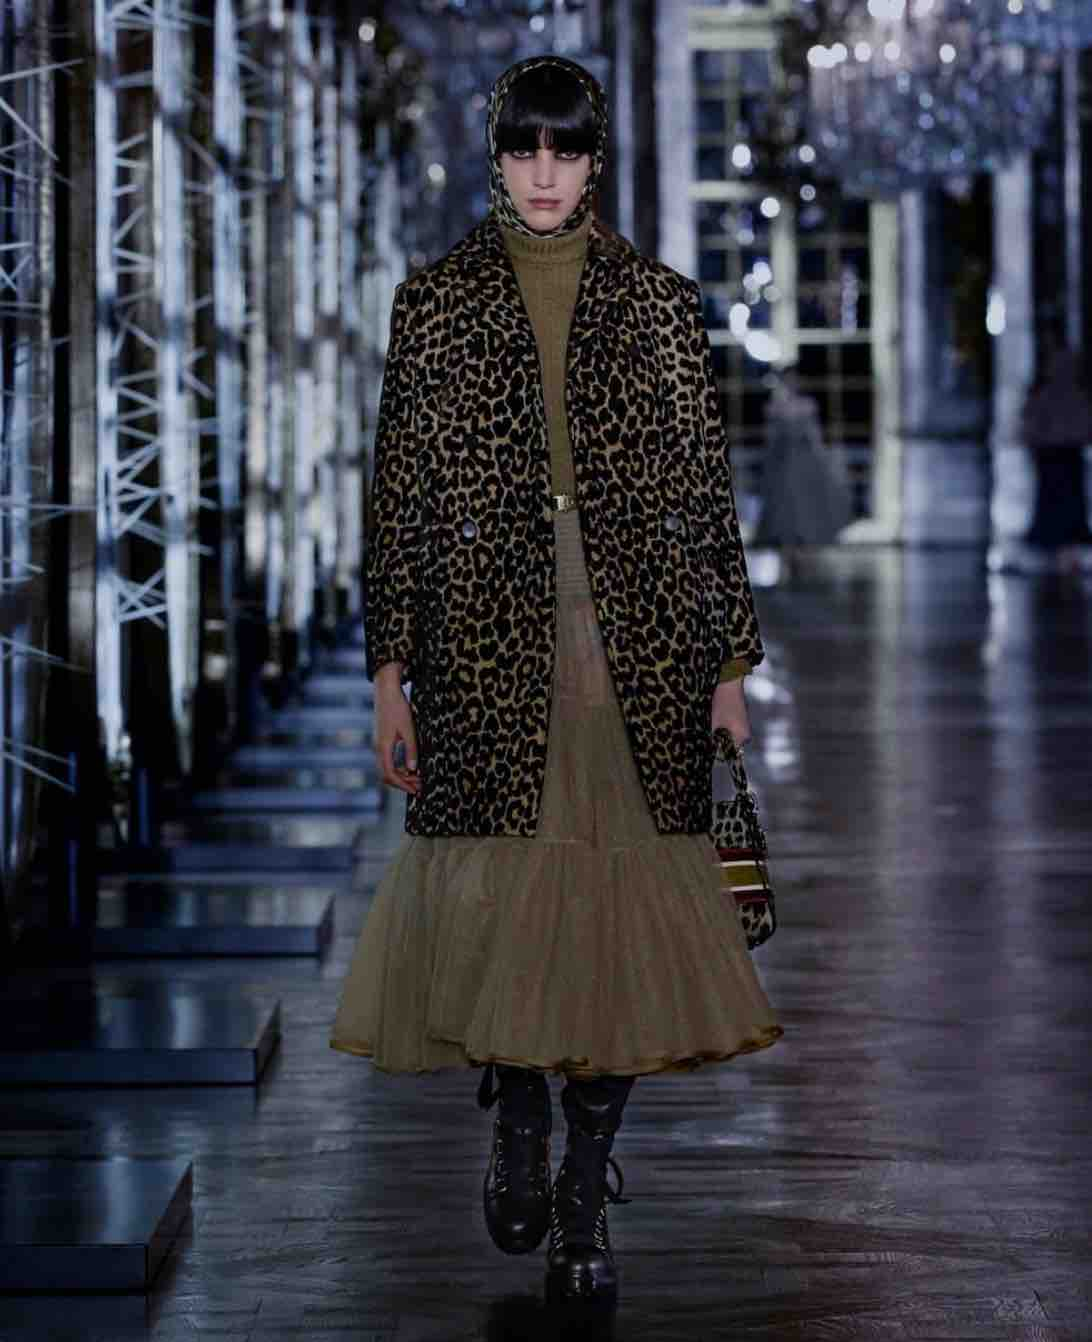 Christian Dior Leopard One Of The Style Trends To Shop For Fall 2021